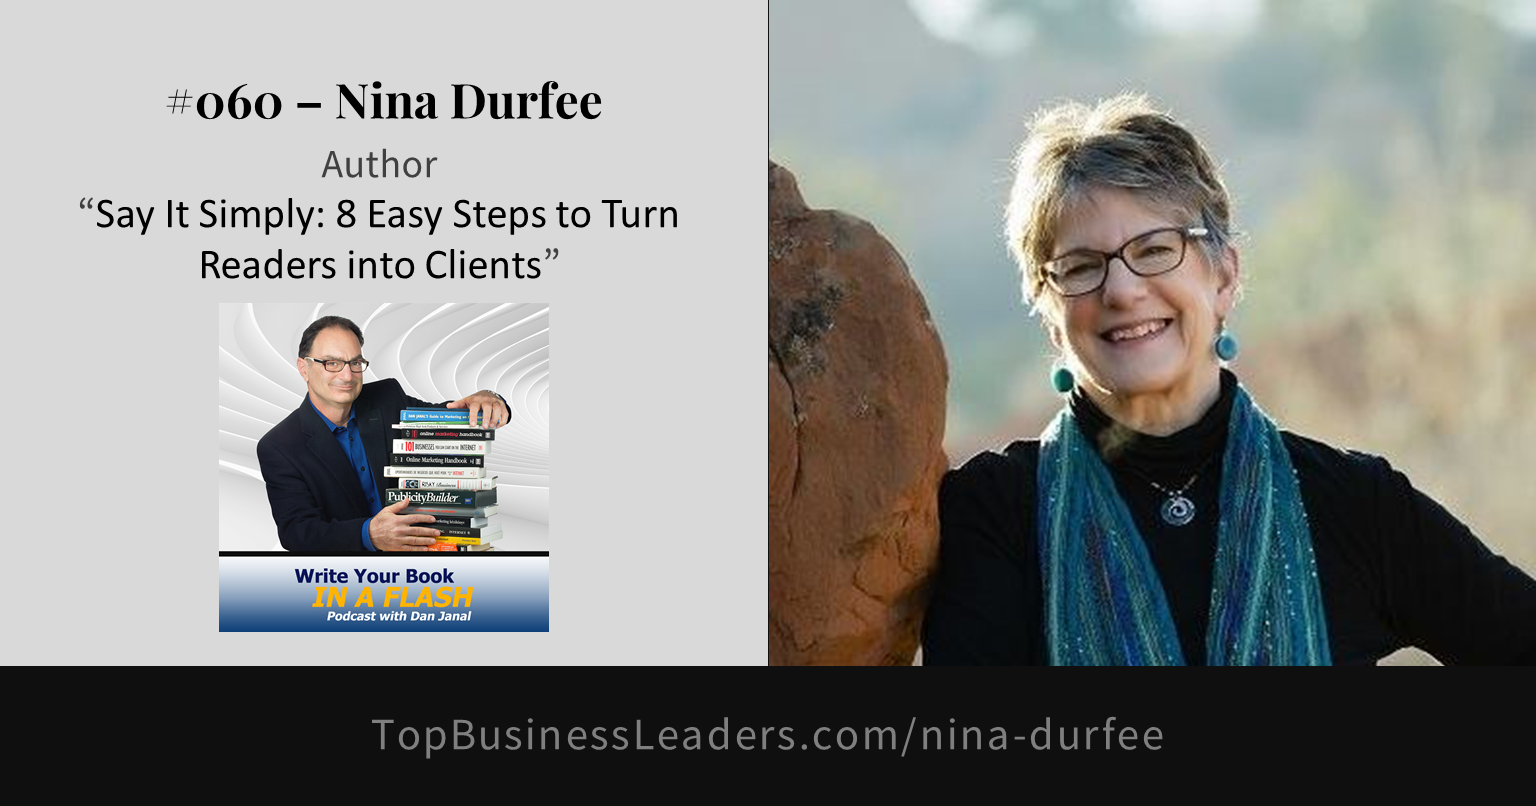 nina-durfee-author-say-it-simply-8-easy-steps-to-turn-readers-into-clients